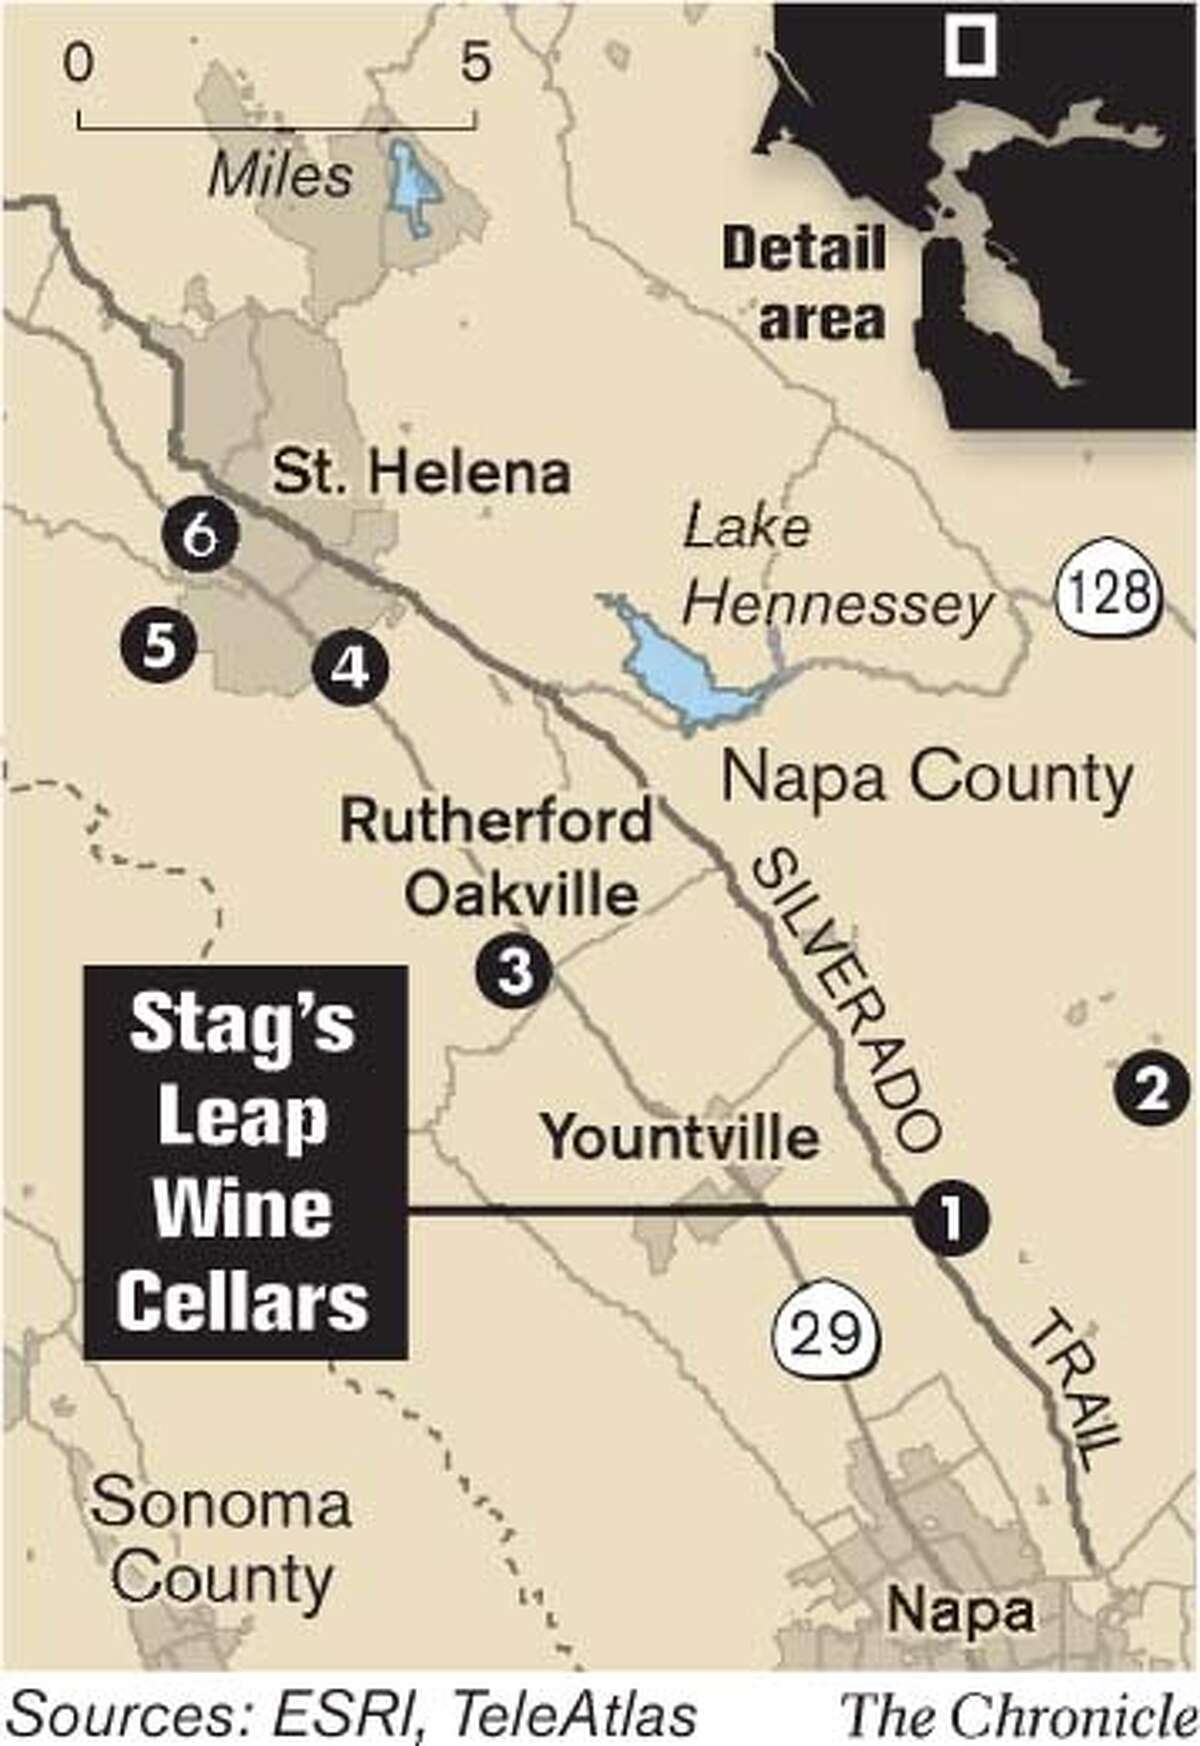 Stag's Leap Wine Cellars. Chronicle Graphic